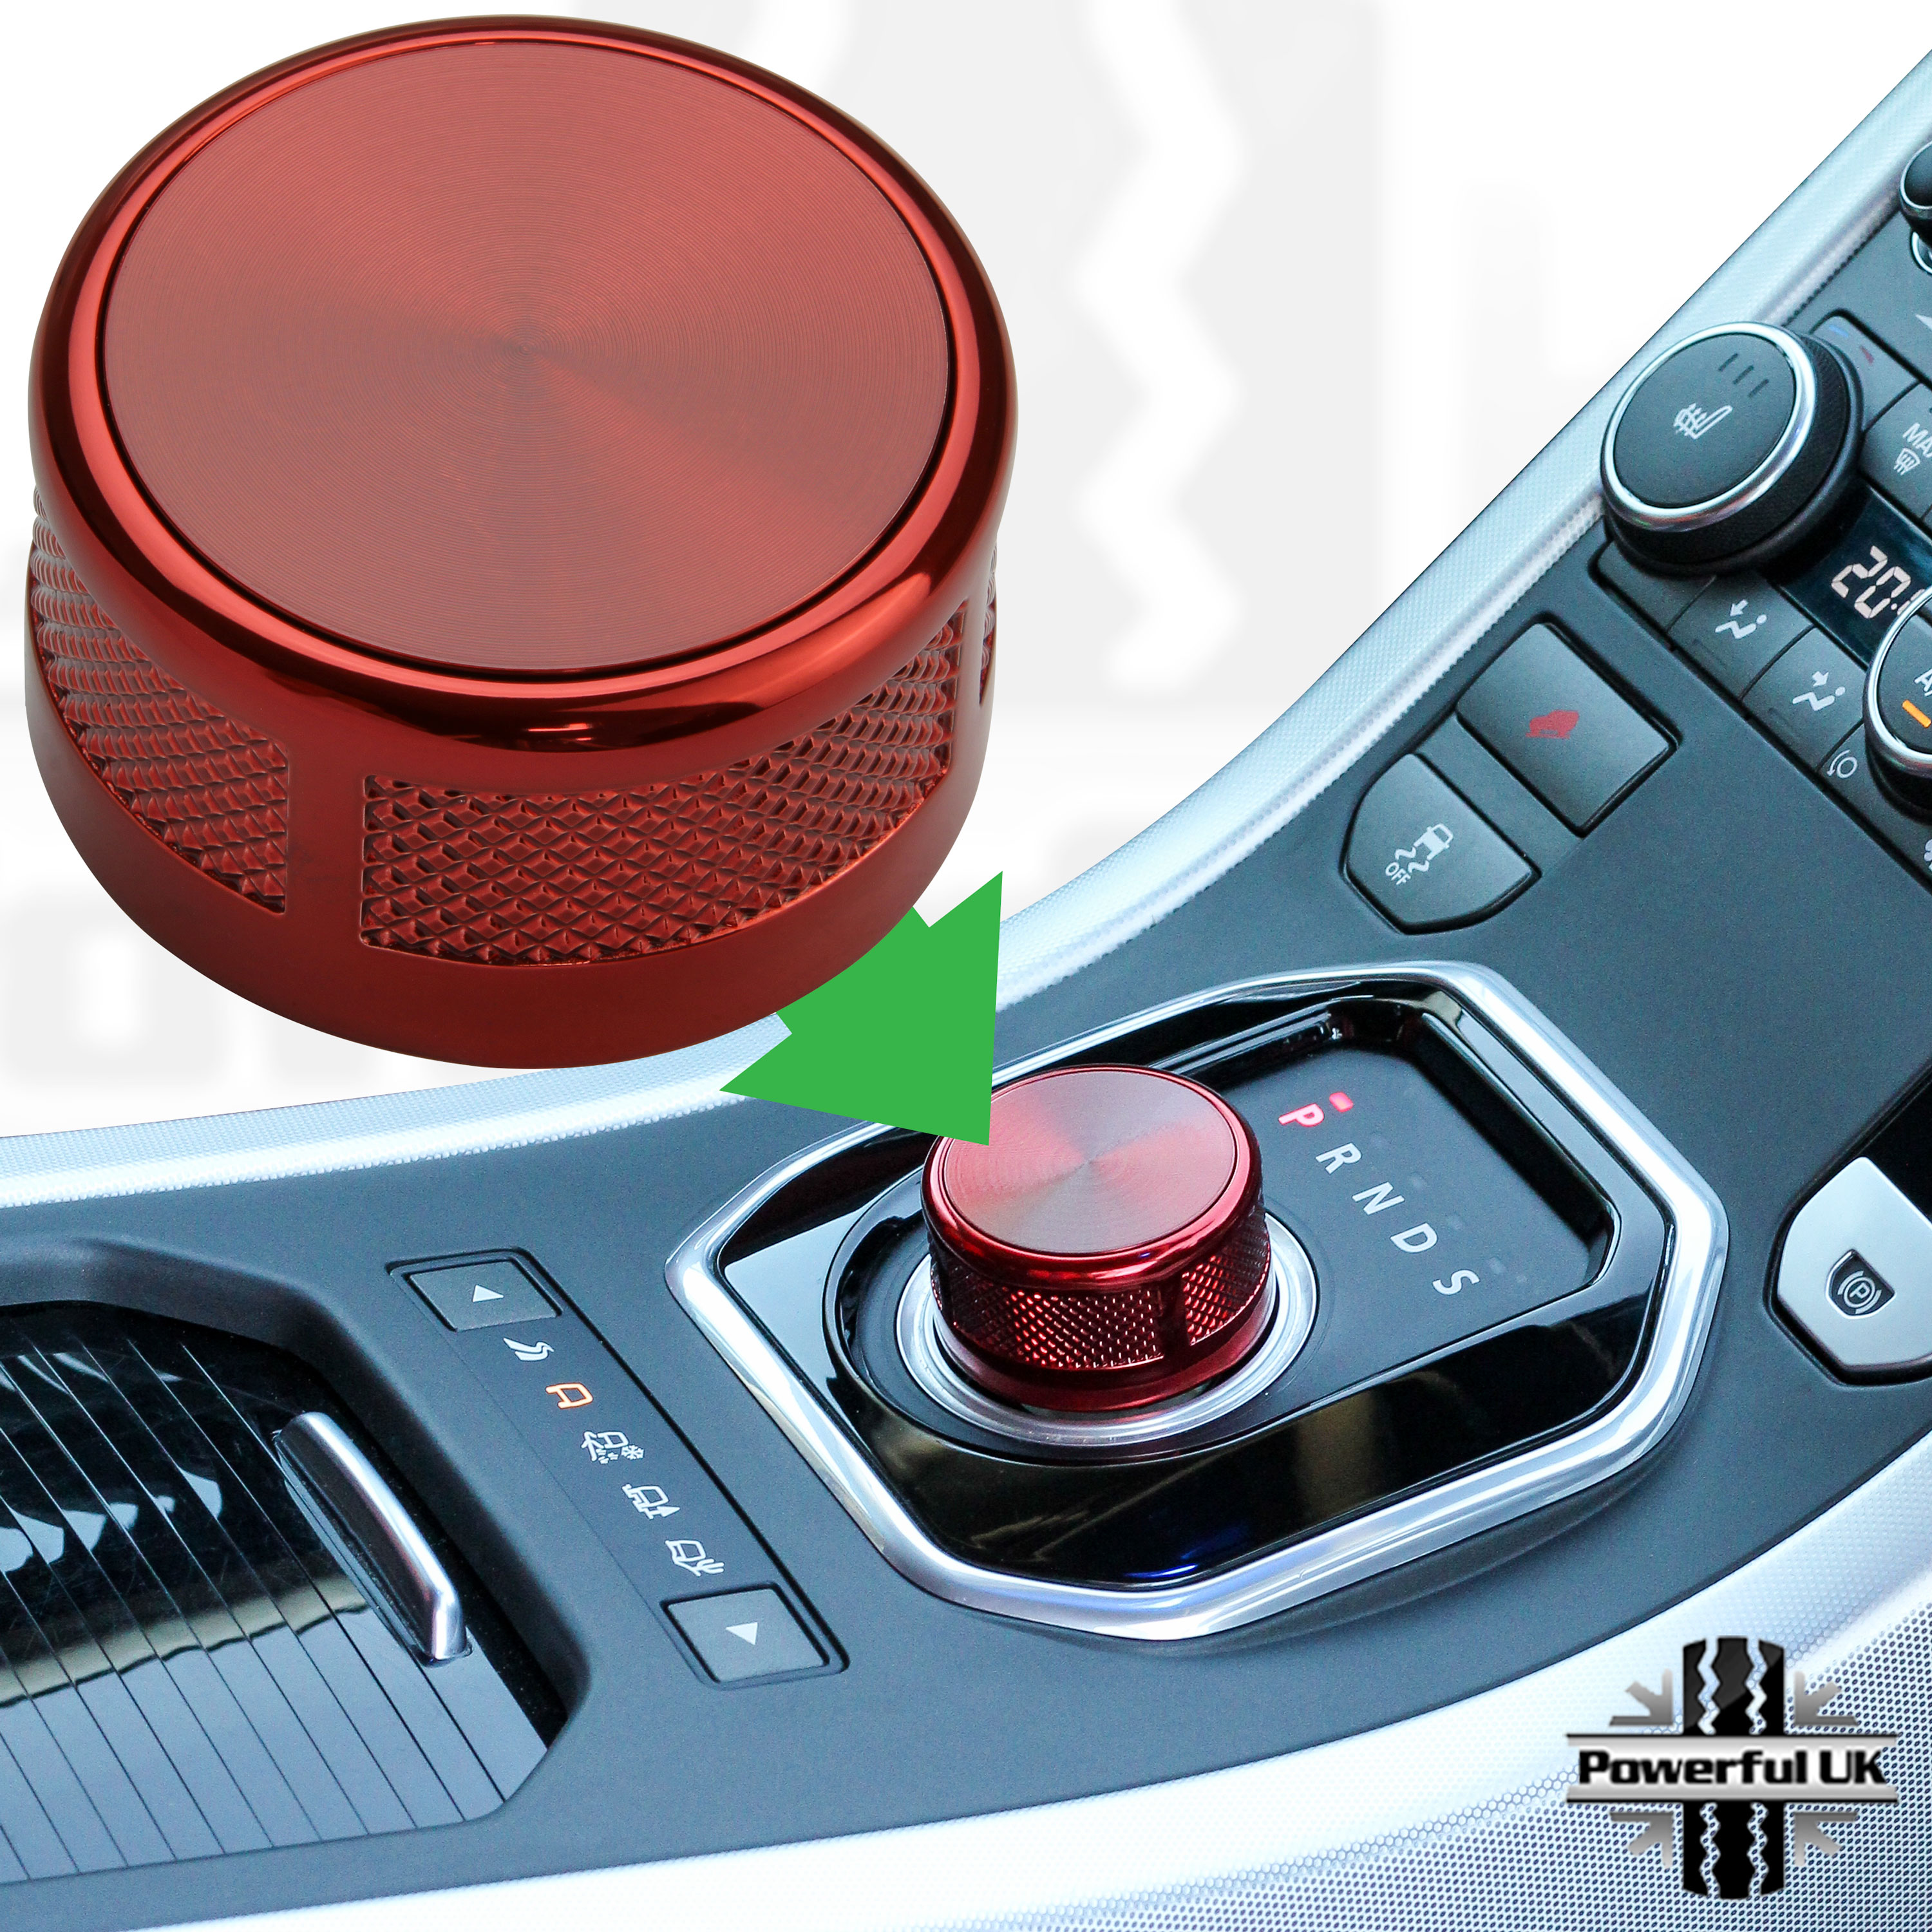 Details about Autobiography style Red rotary gear shift selector knob for  Range Rover Evoque